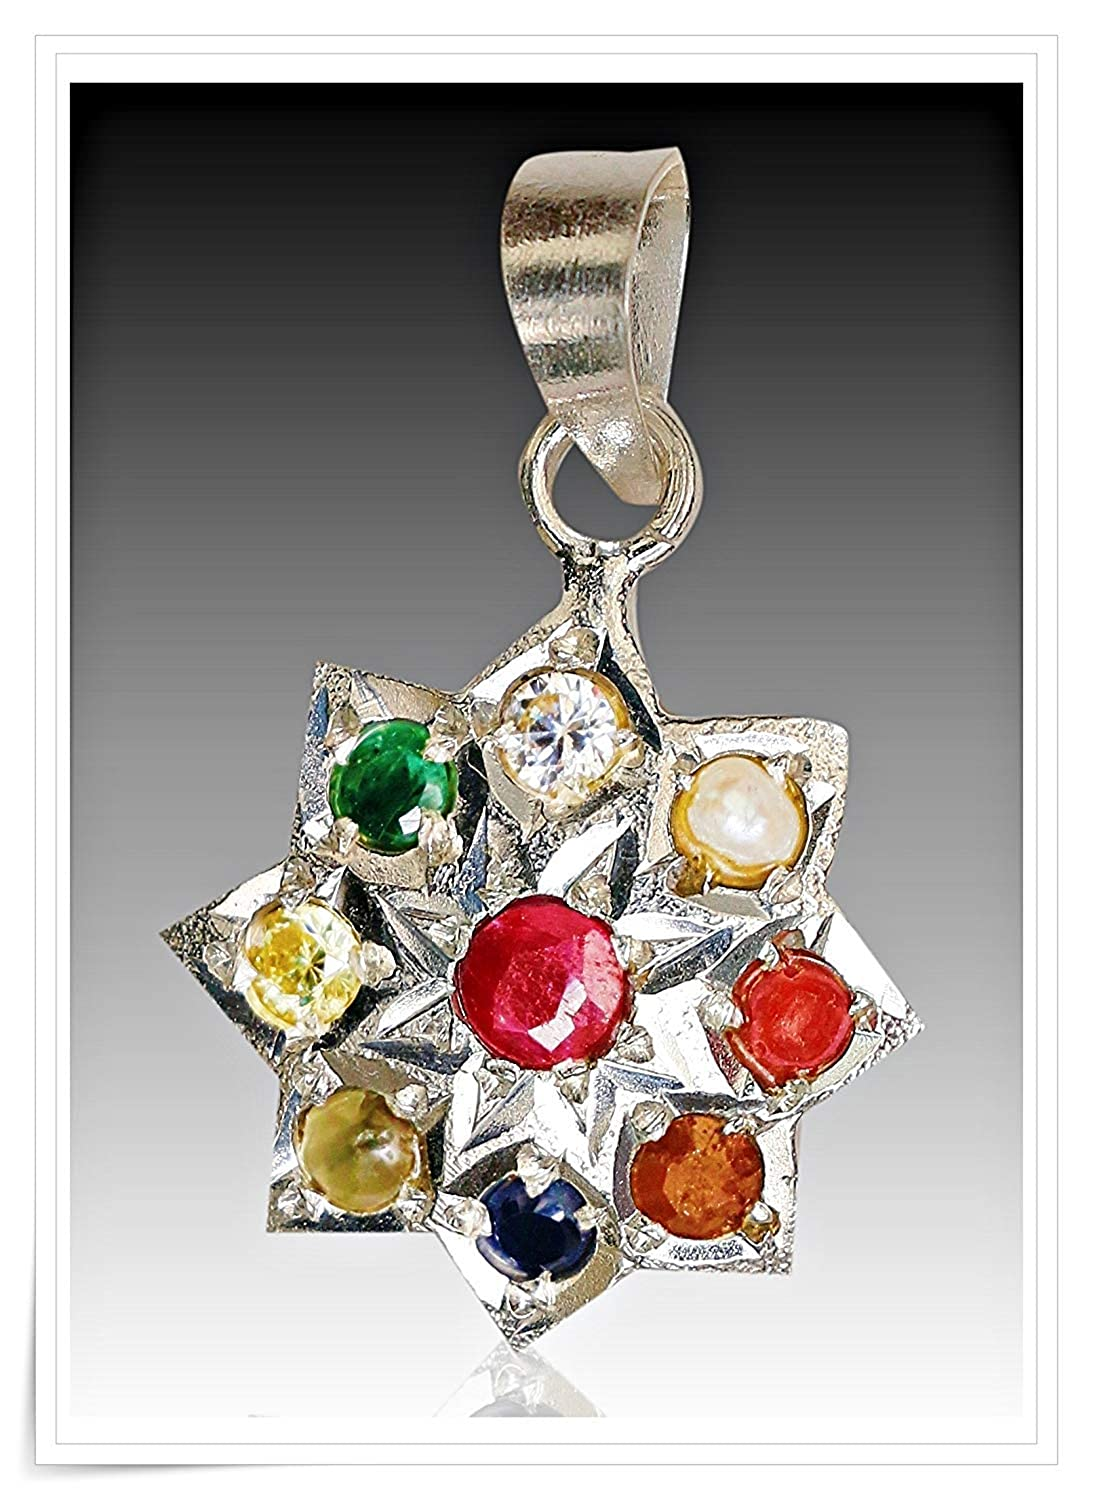 For nav Greh Navratna Silver pendant in Designer unique looks with 100/% Original Gemstones and pure silver For Unisex Real Navaratan Pendant 100/% PURE SILVER AND ORIGINAL GEMST navGreh Pendant